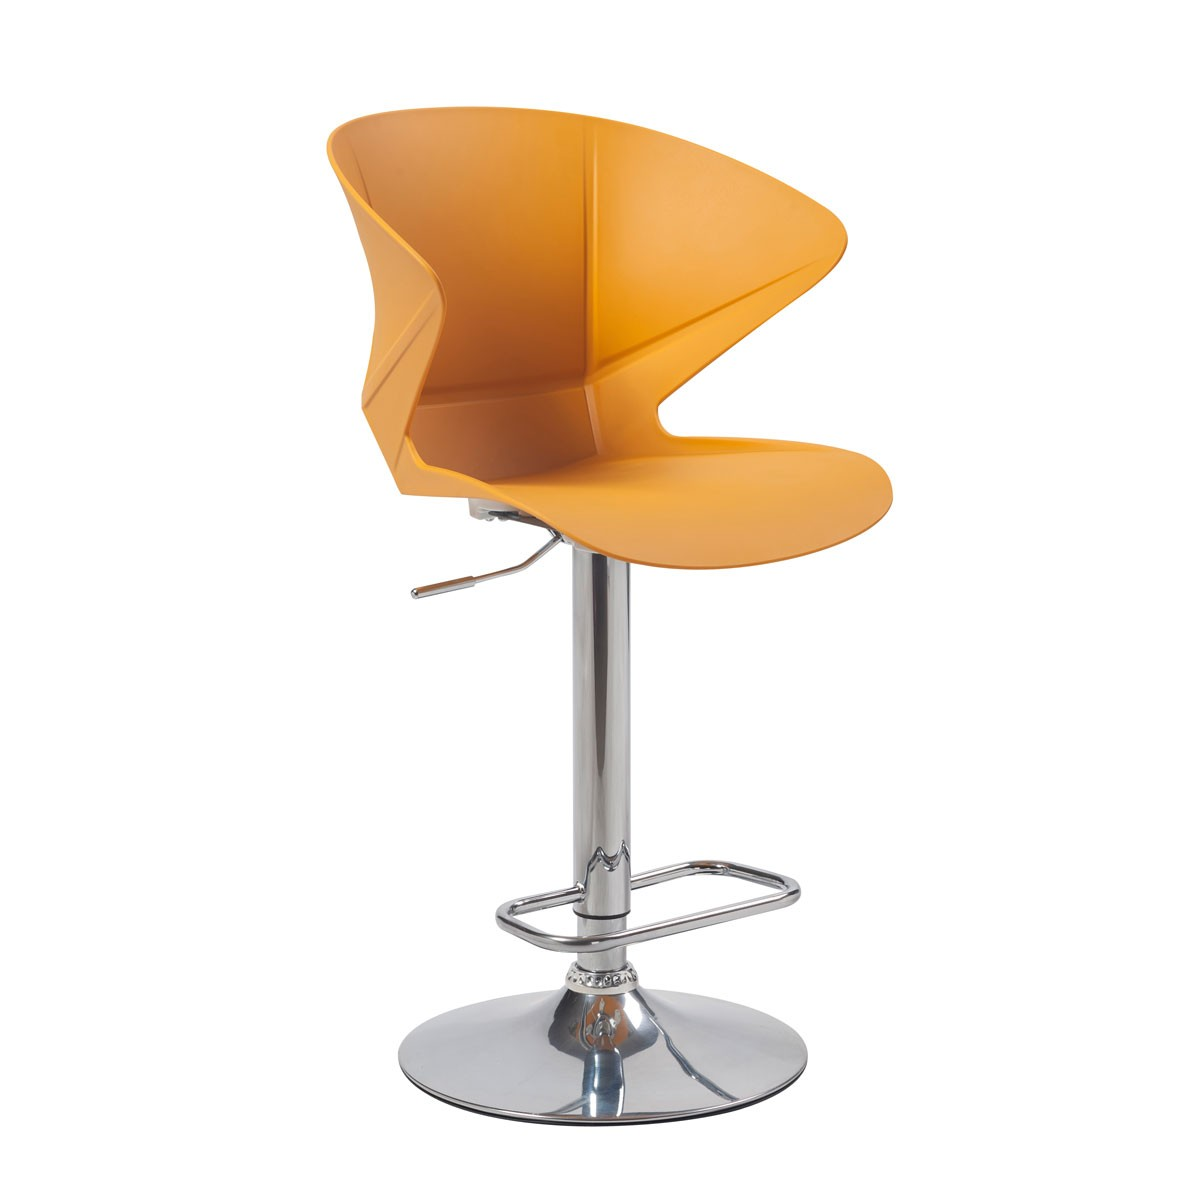 Adjustable Height Swivel Bar Stool with Round Base - (YMG-9802-1)